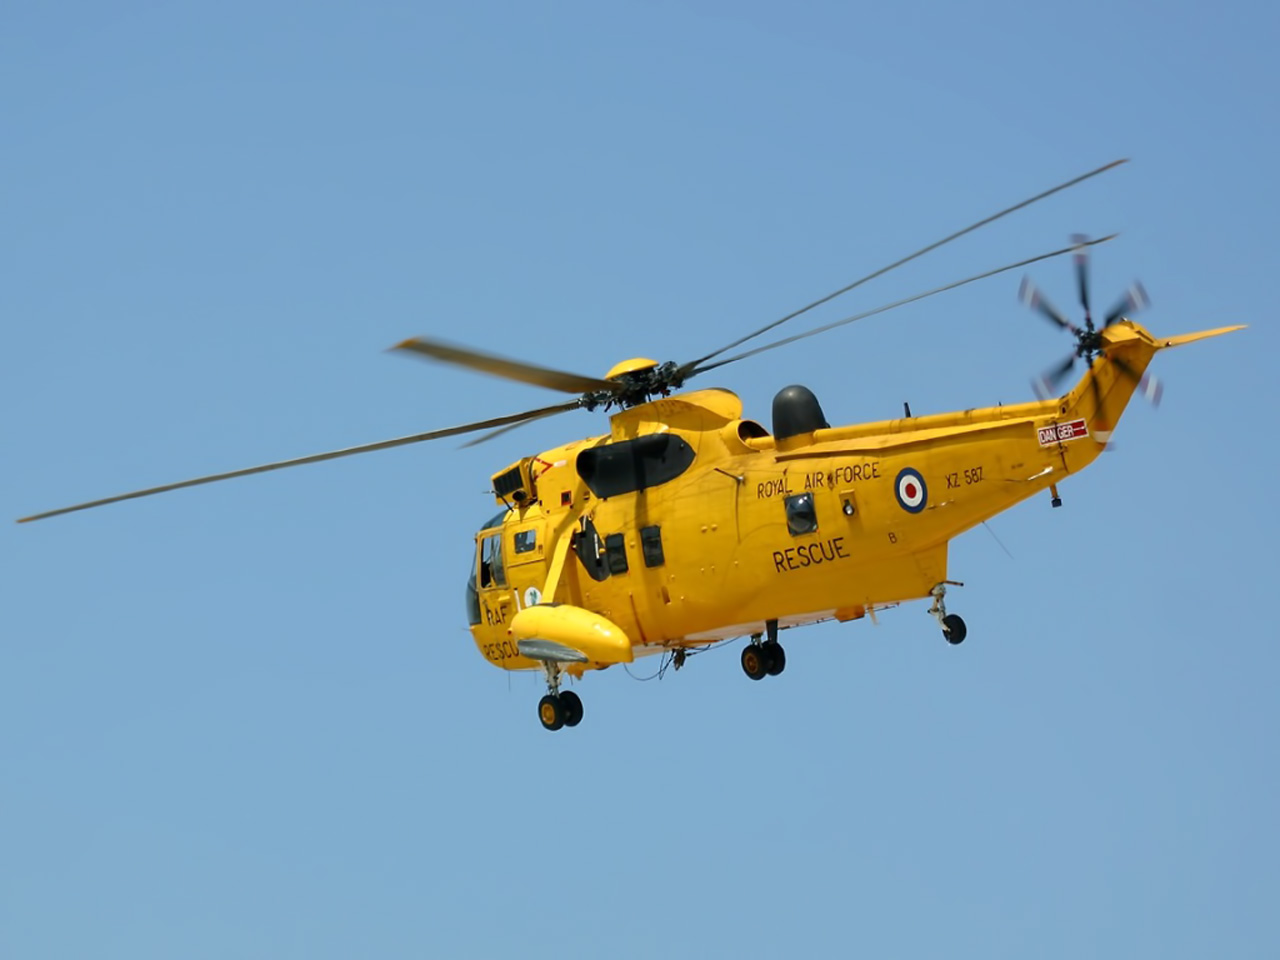 free download hq yellow helicopter wallpaper num. 284 : 1280 x 960